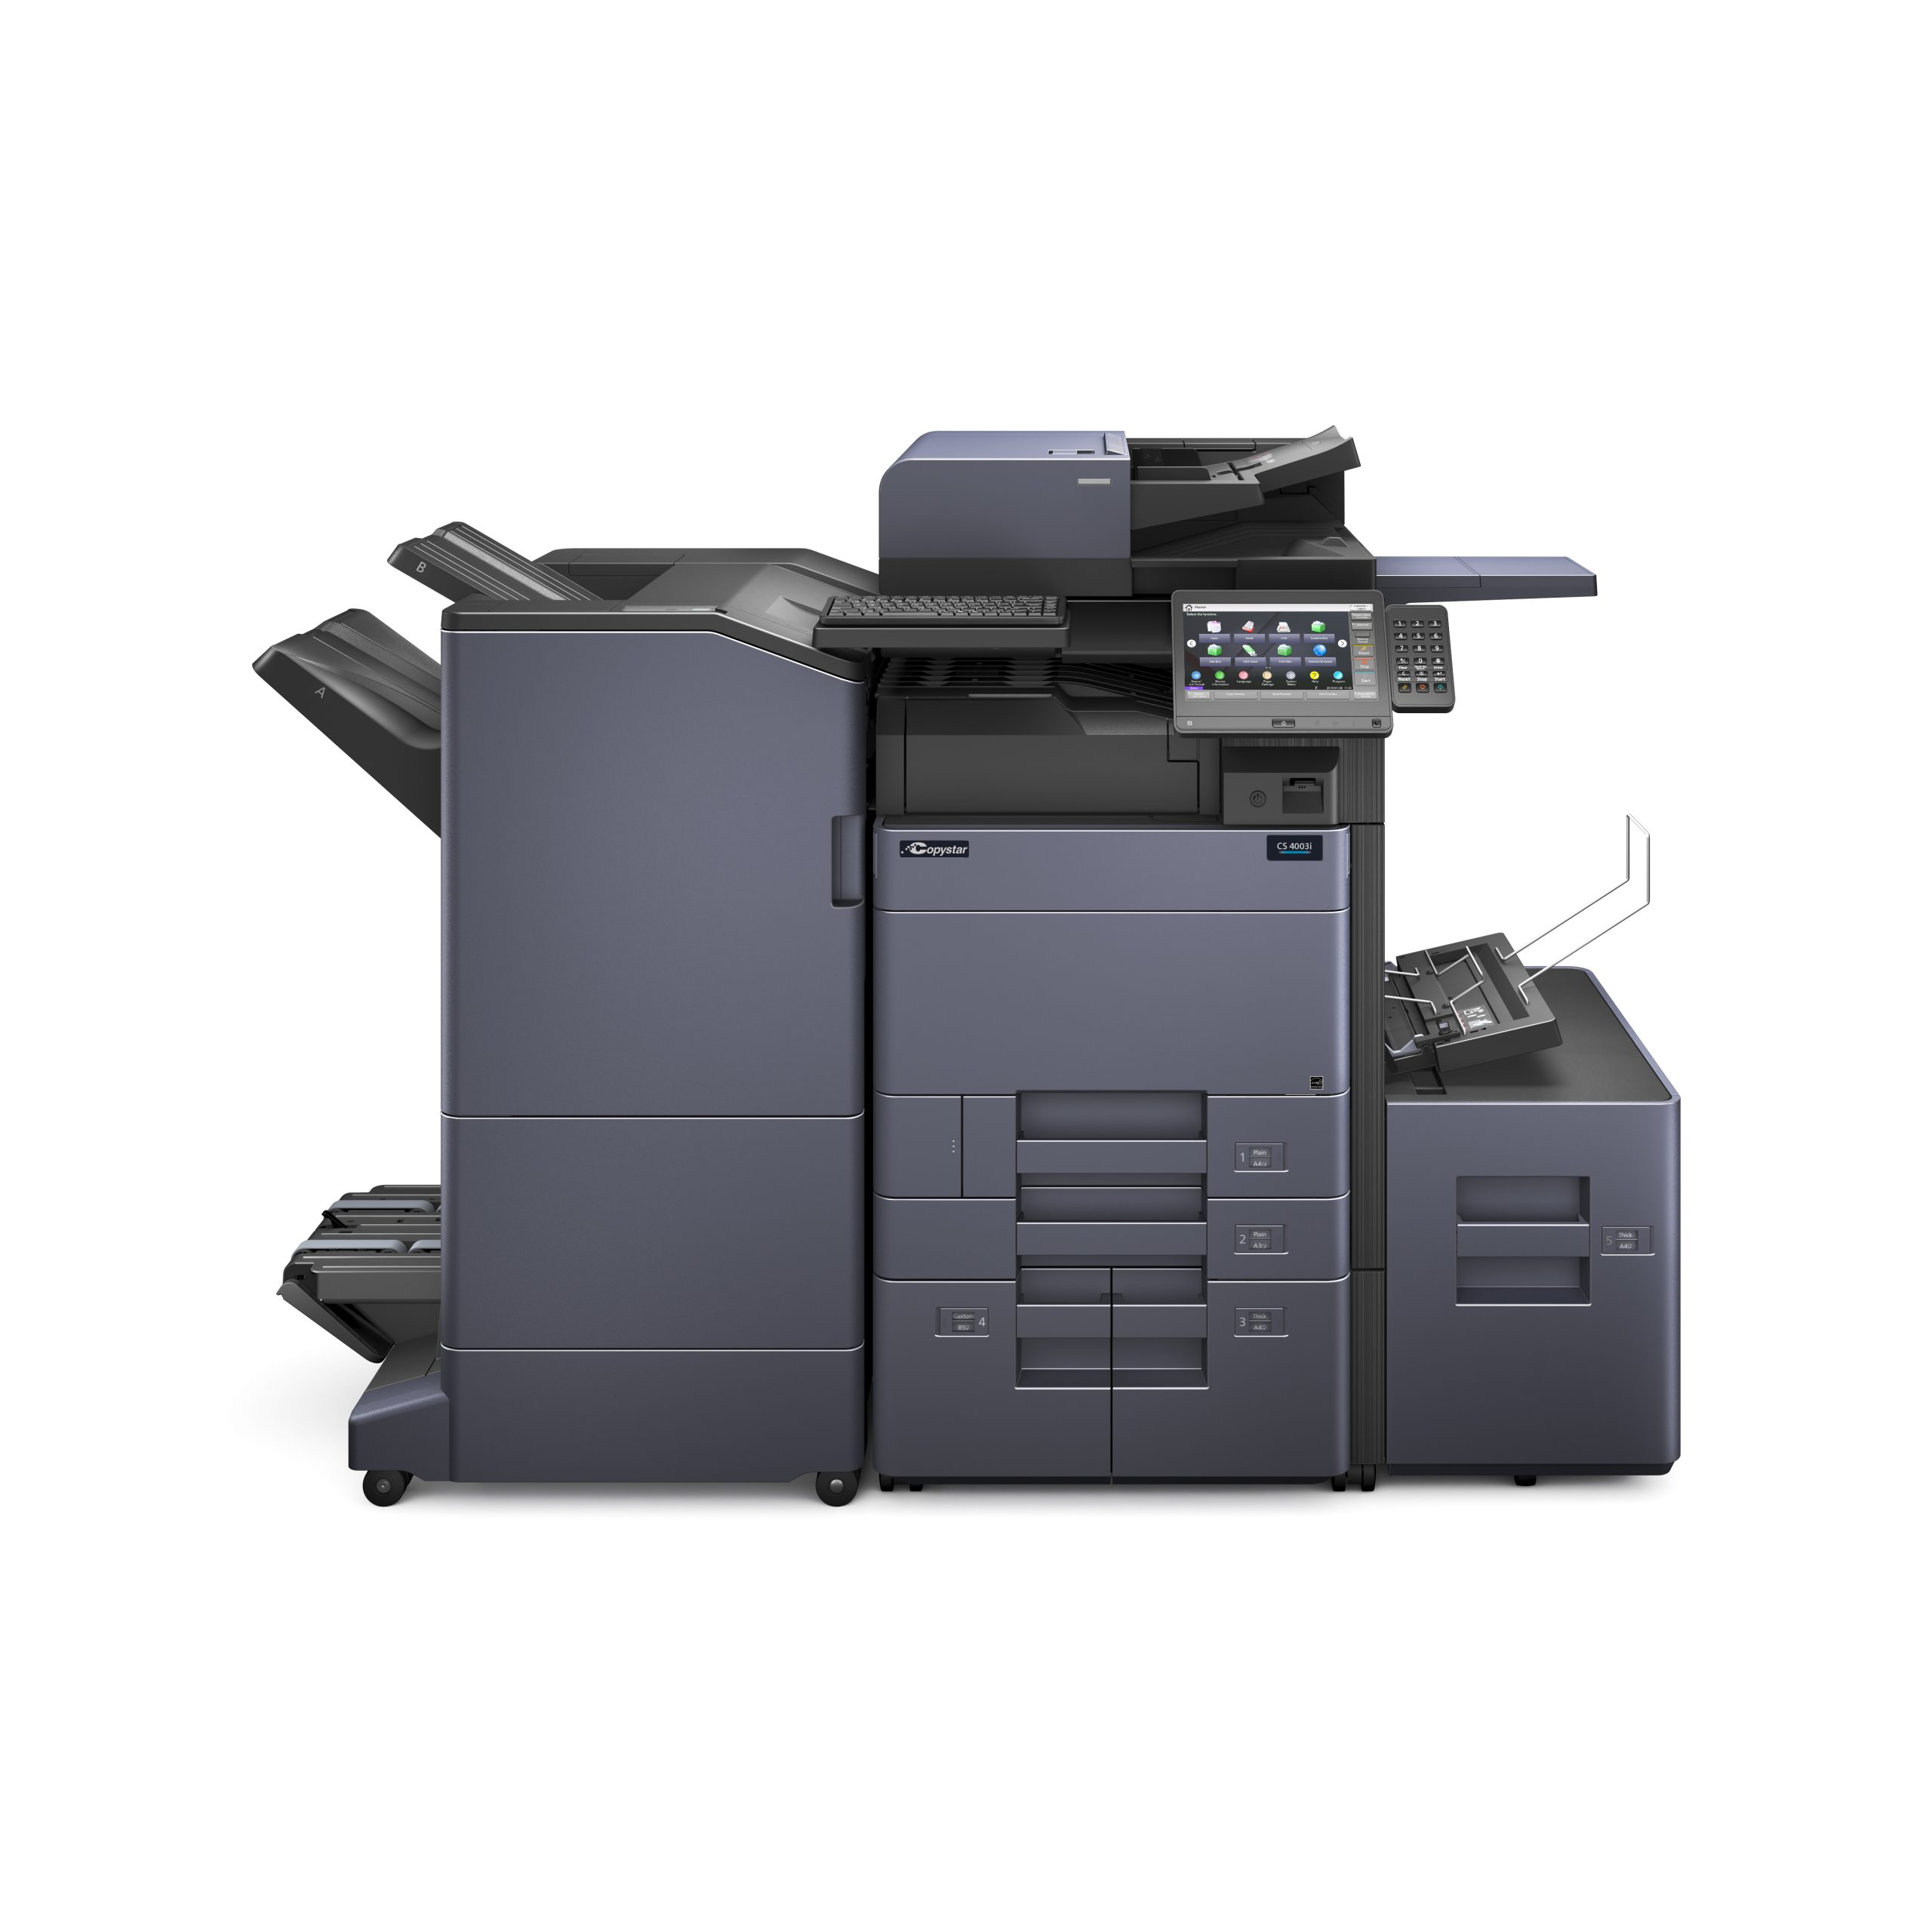 kyocera CS_4003i Copier Florida